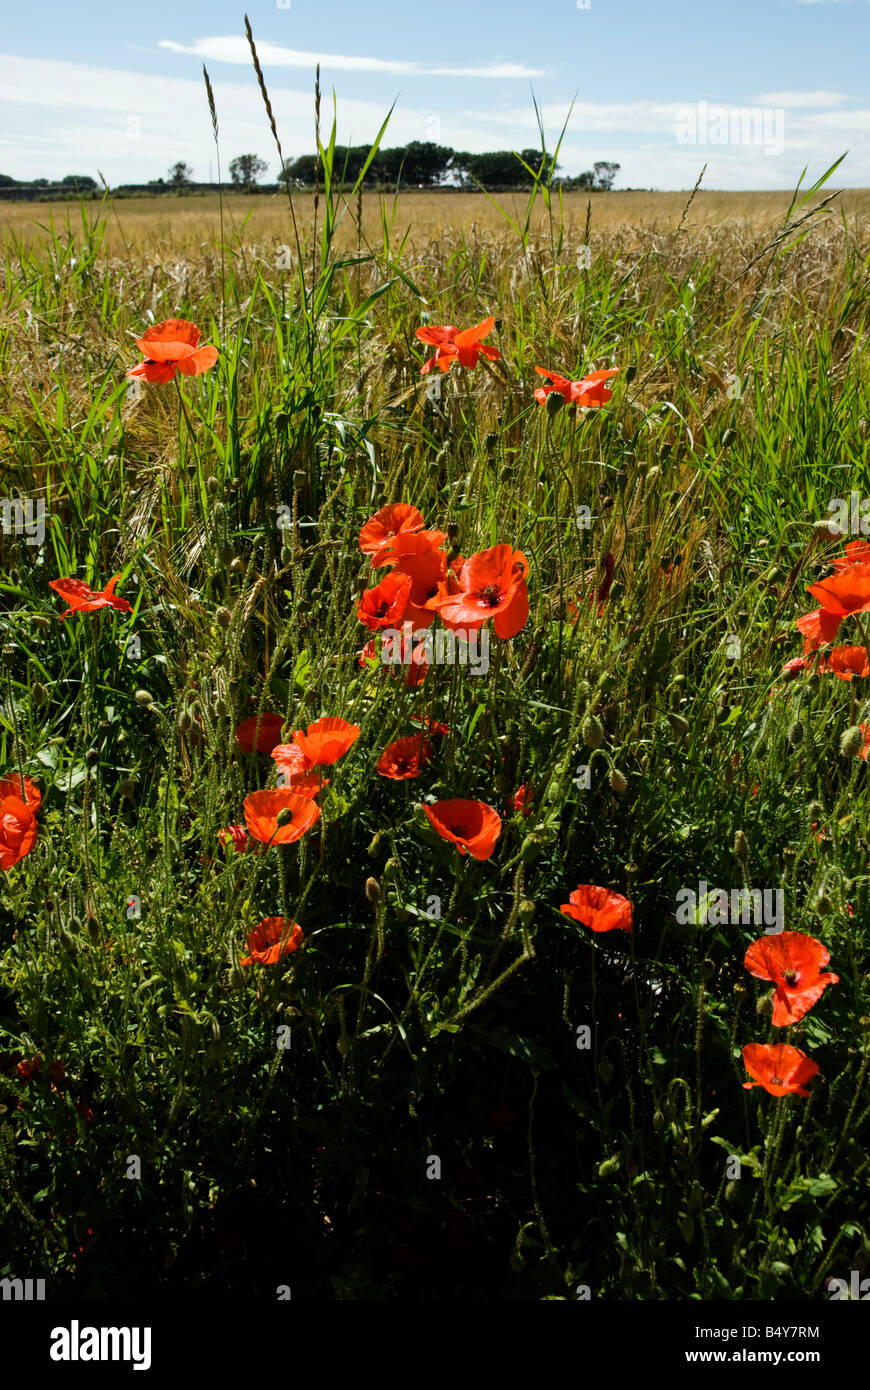 Poppies growing at edge of field of barley - Stock Photo